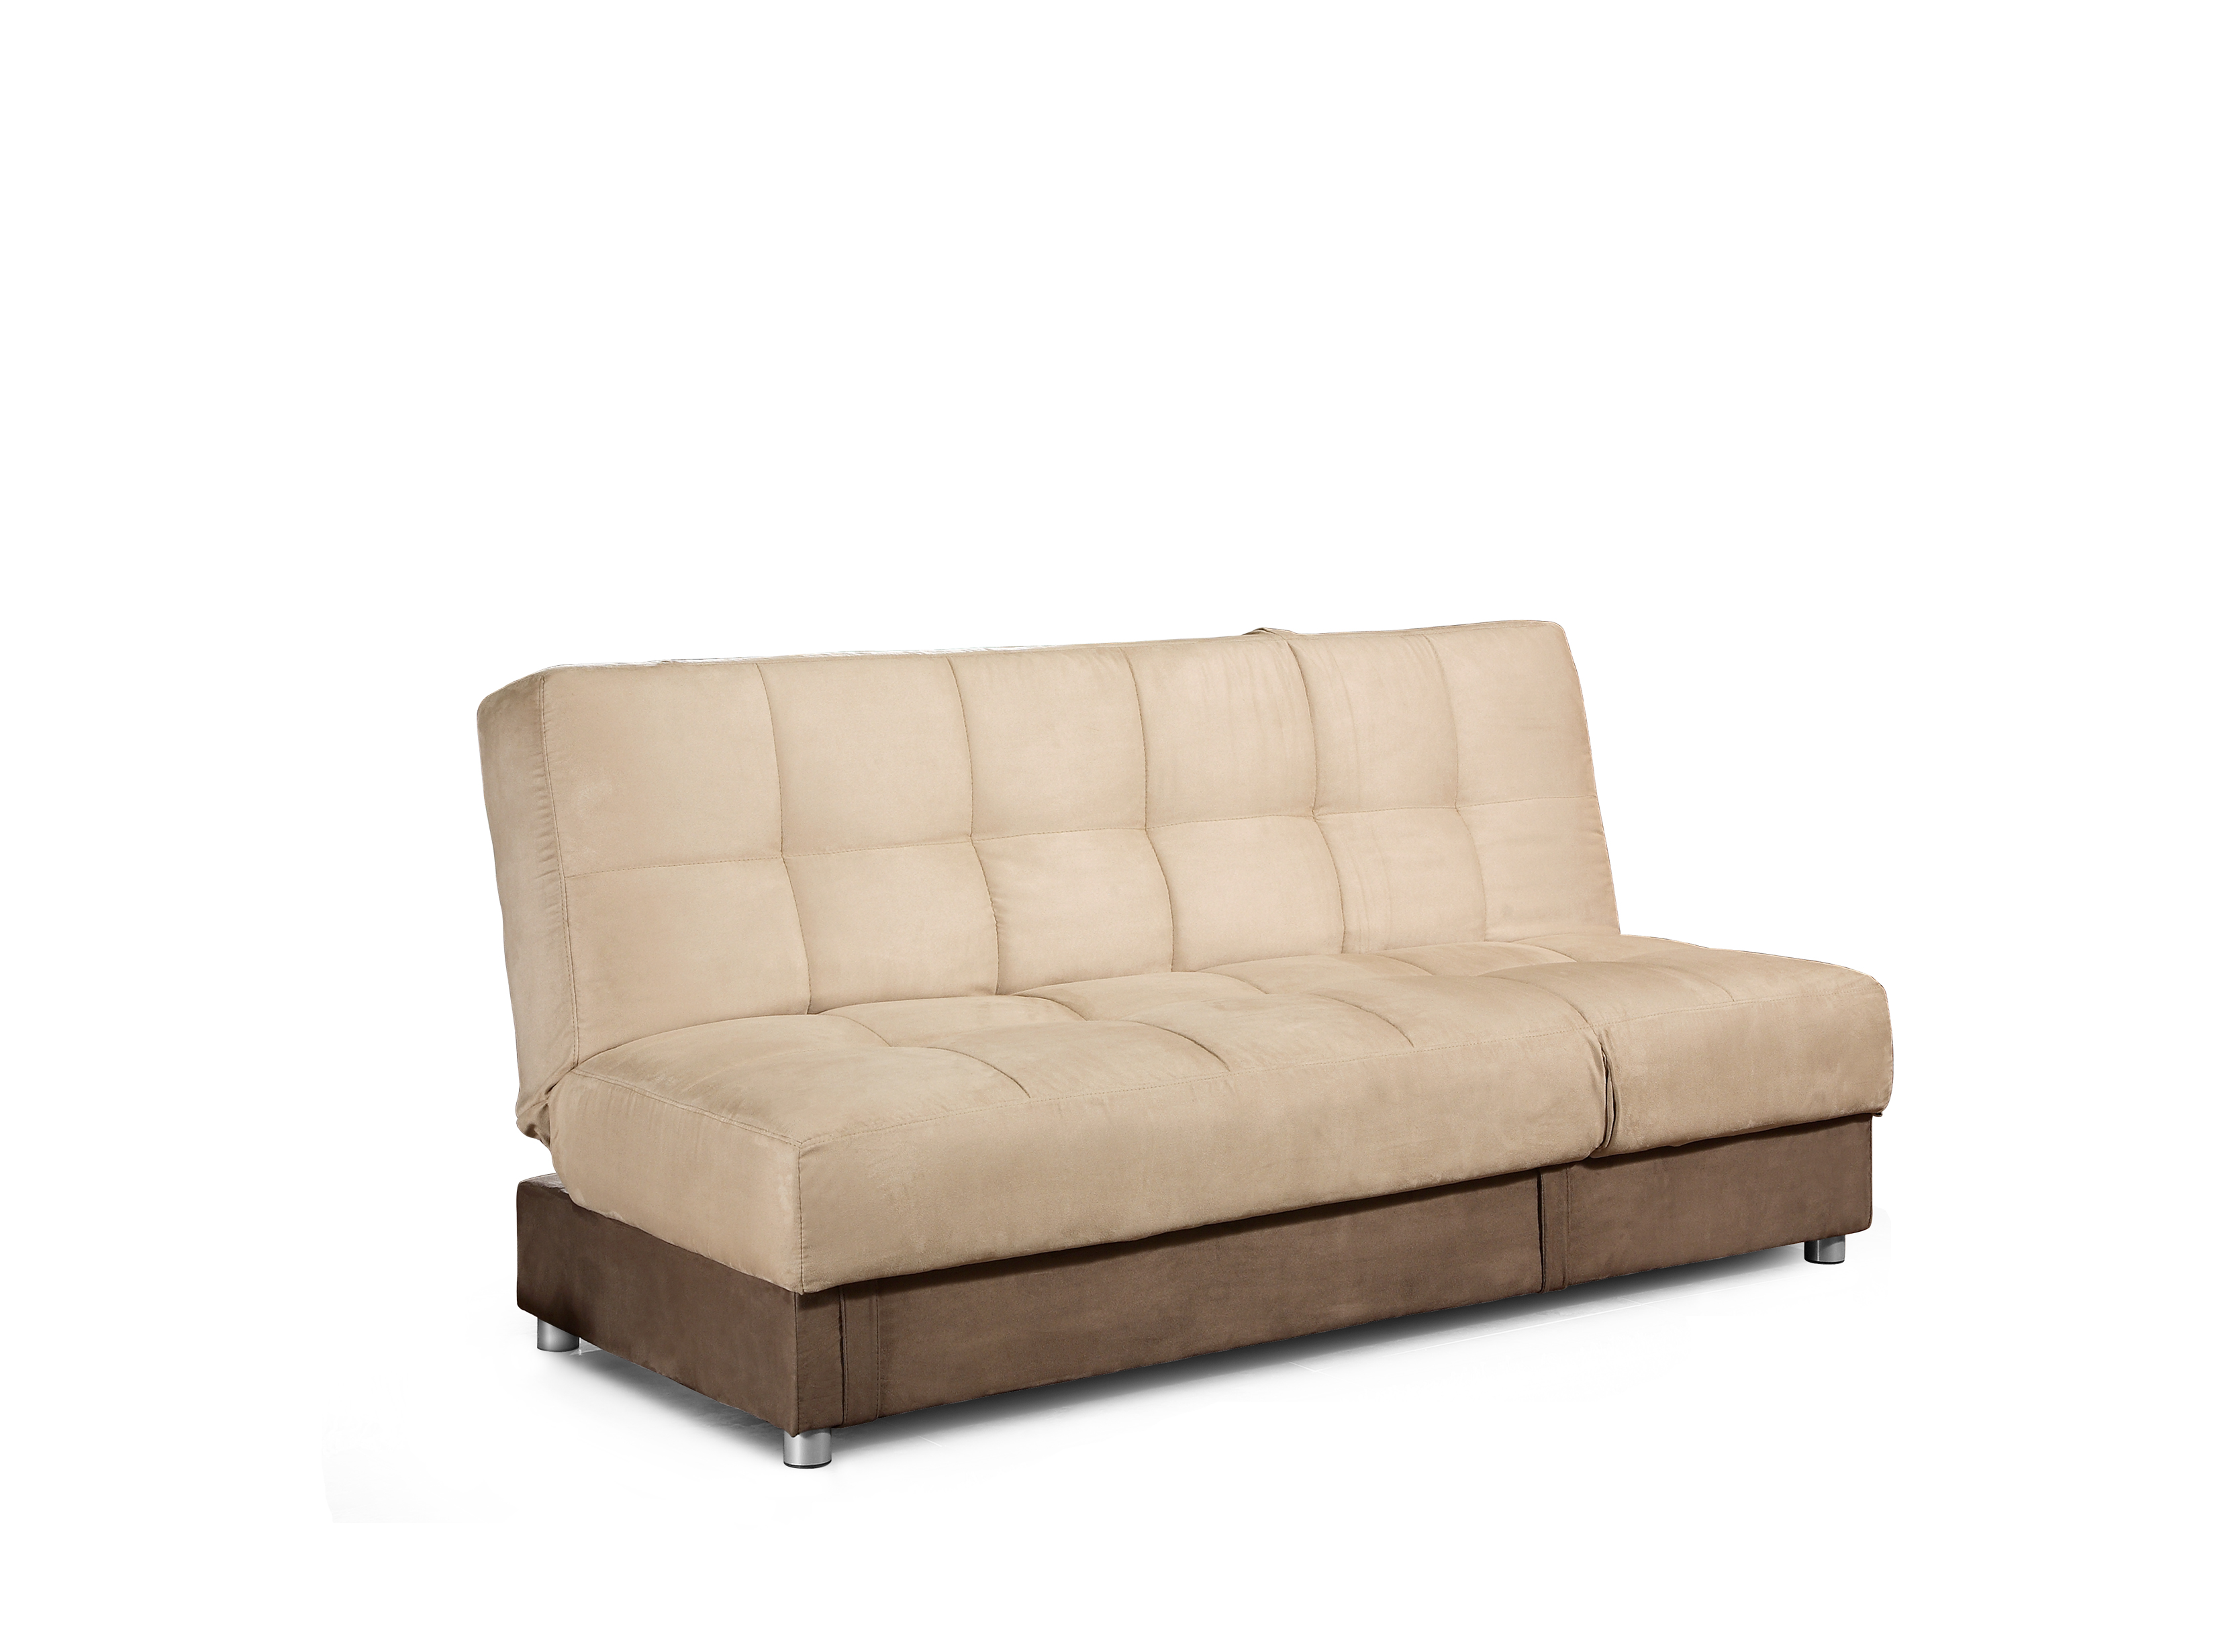 Sofa cama modelo maeva precio 329 euros living room furniture sofa and couch styles - Sofa camif ...